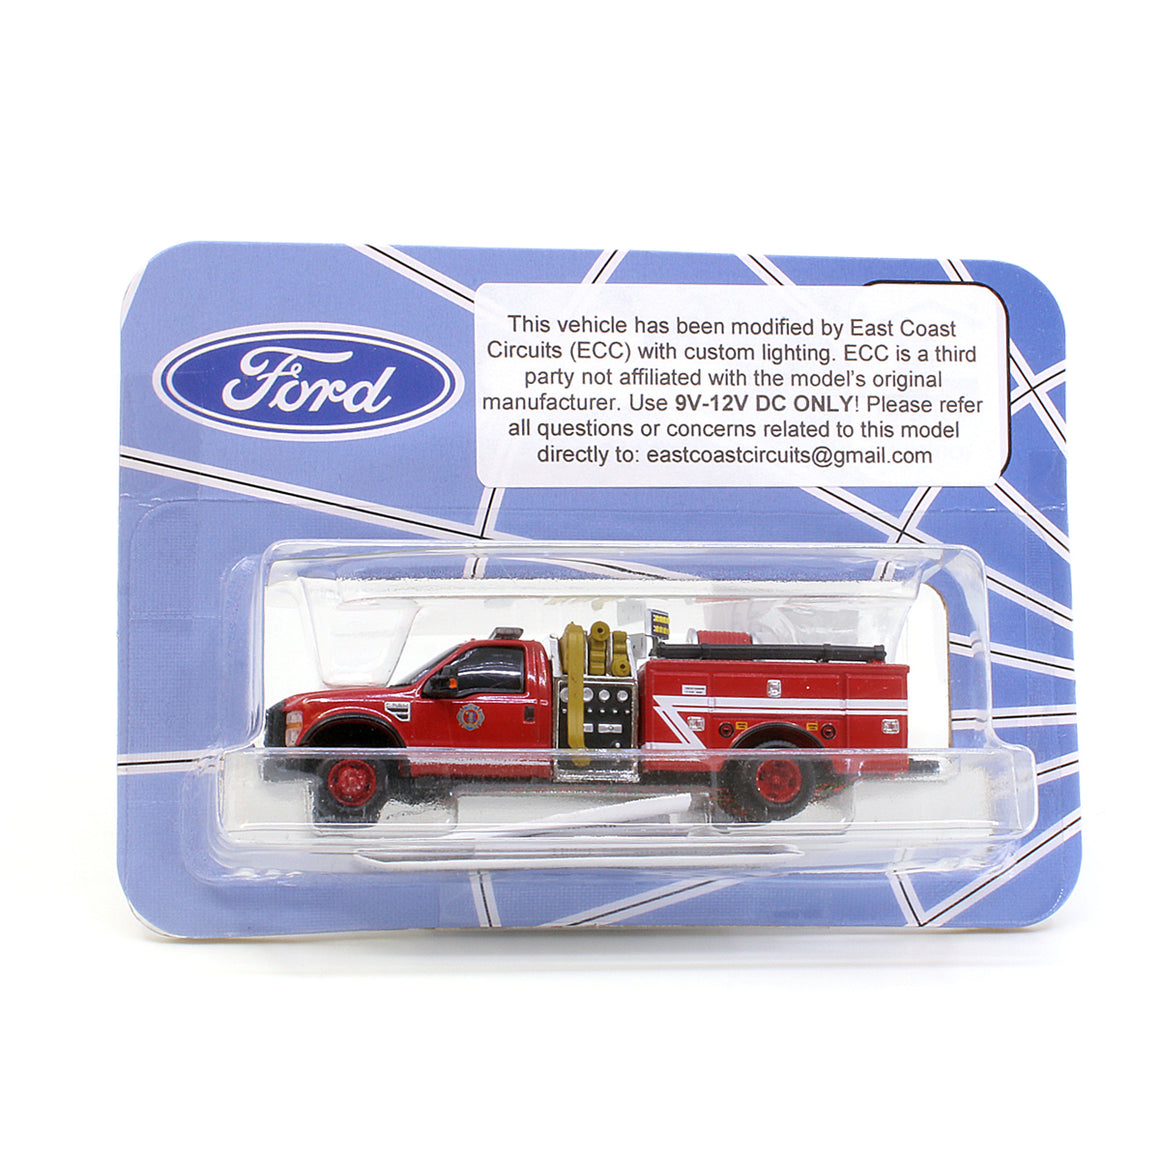 HO Scale: Lighted Ford F-550 - Mini Pumper Fire Truck - Red w/ White Z Stripe